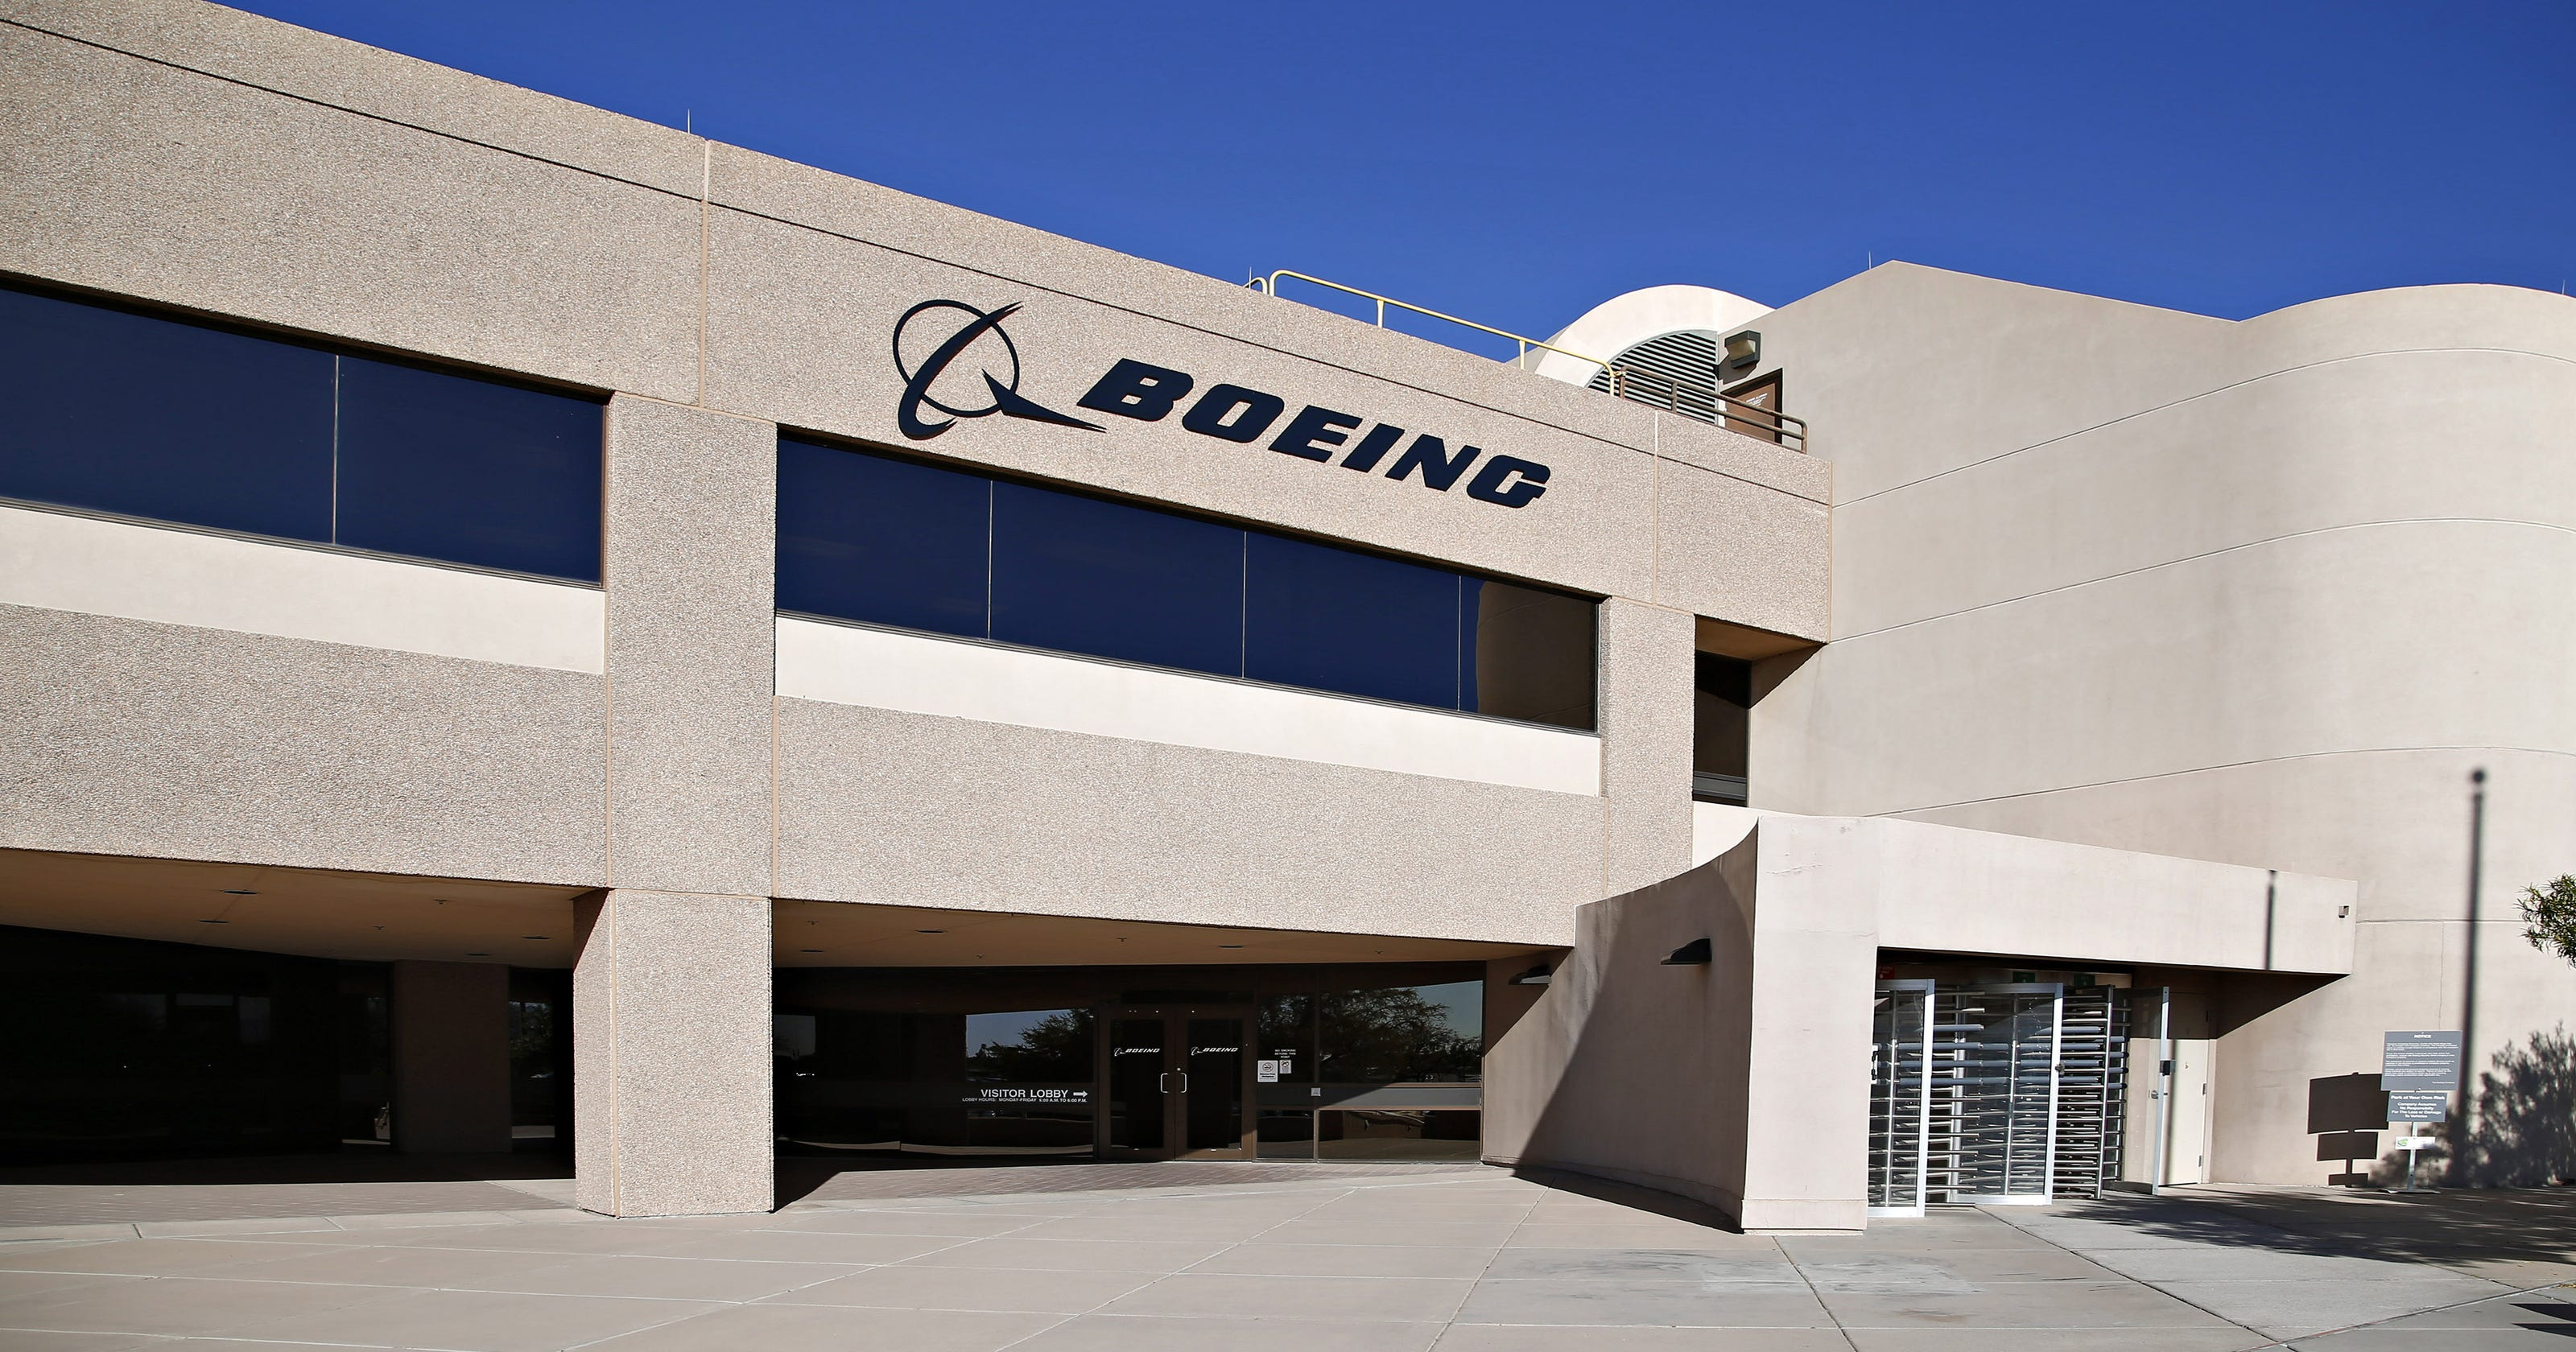 boeing wiring harness boeing will move hundreds of jobs from seattle to mesa  move hundreds of jobs from seattle to mesa